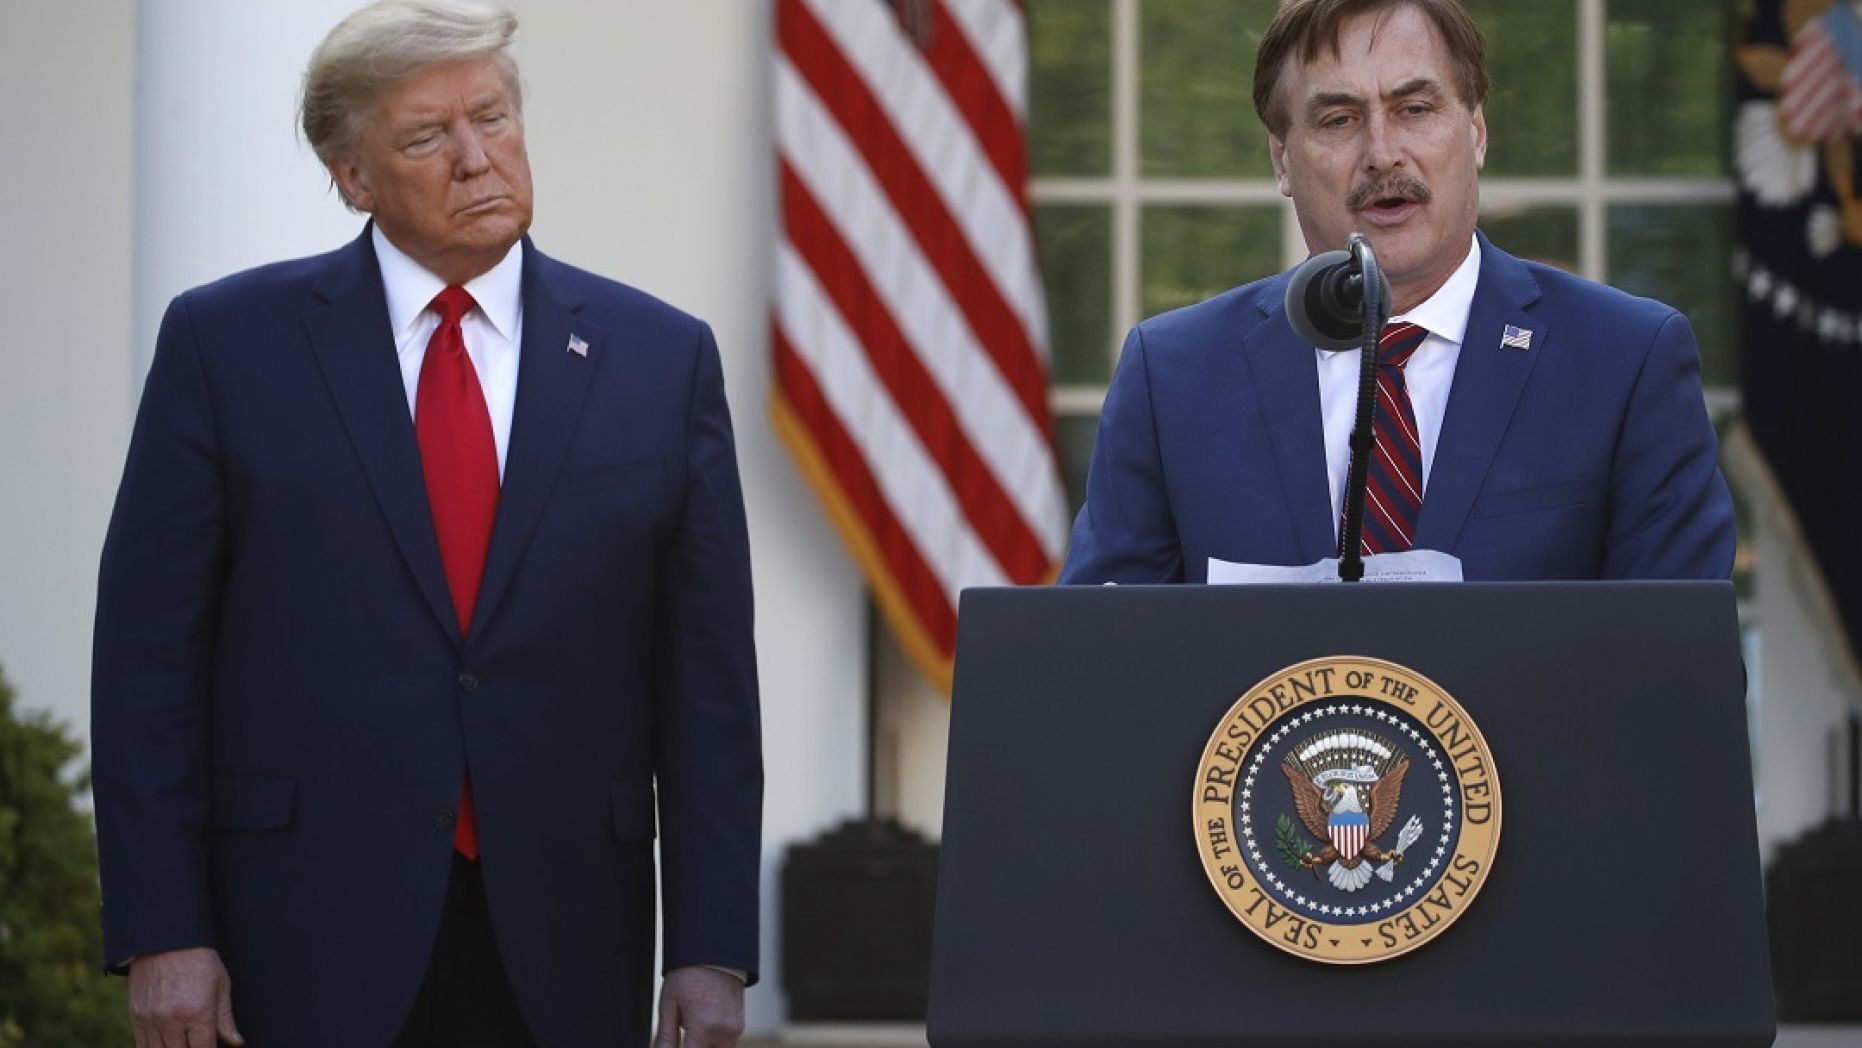 My Pillow CEO Mike Lindell speaks as President Donald Trump listens during a briefing about the coronavirus in the Rose Garden of the White House on Monday. (AP Photo/Alex Brandon)